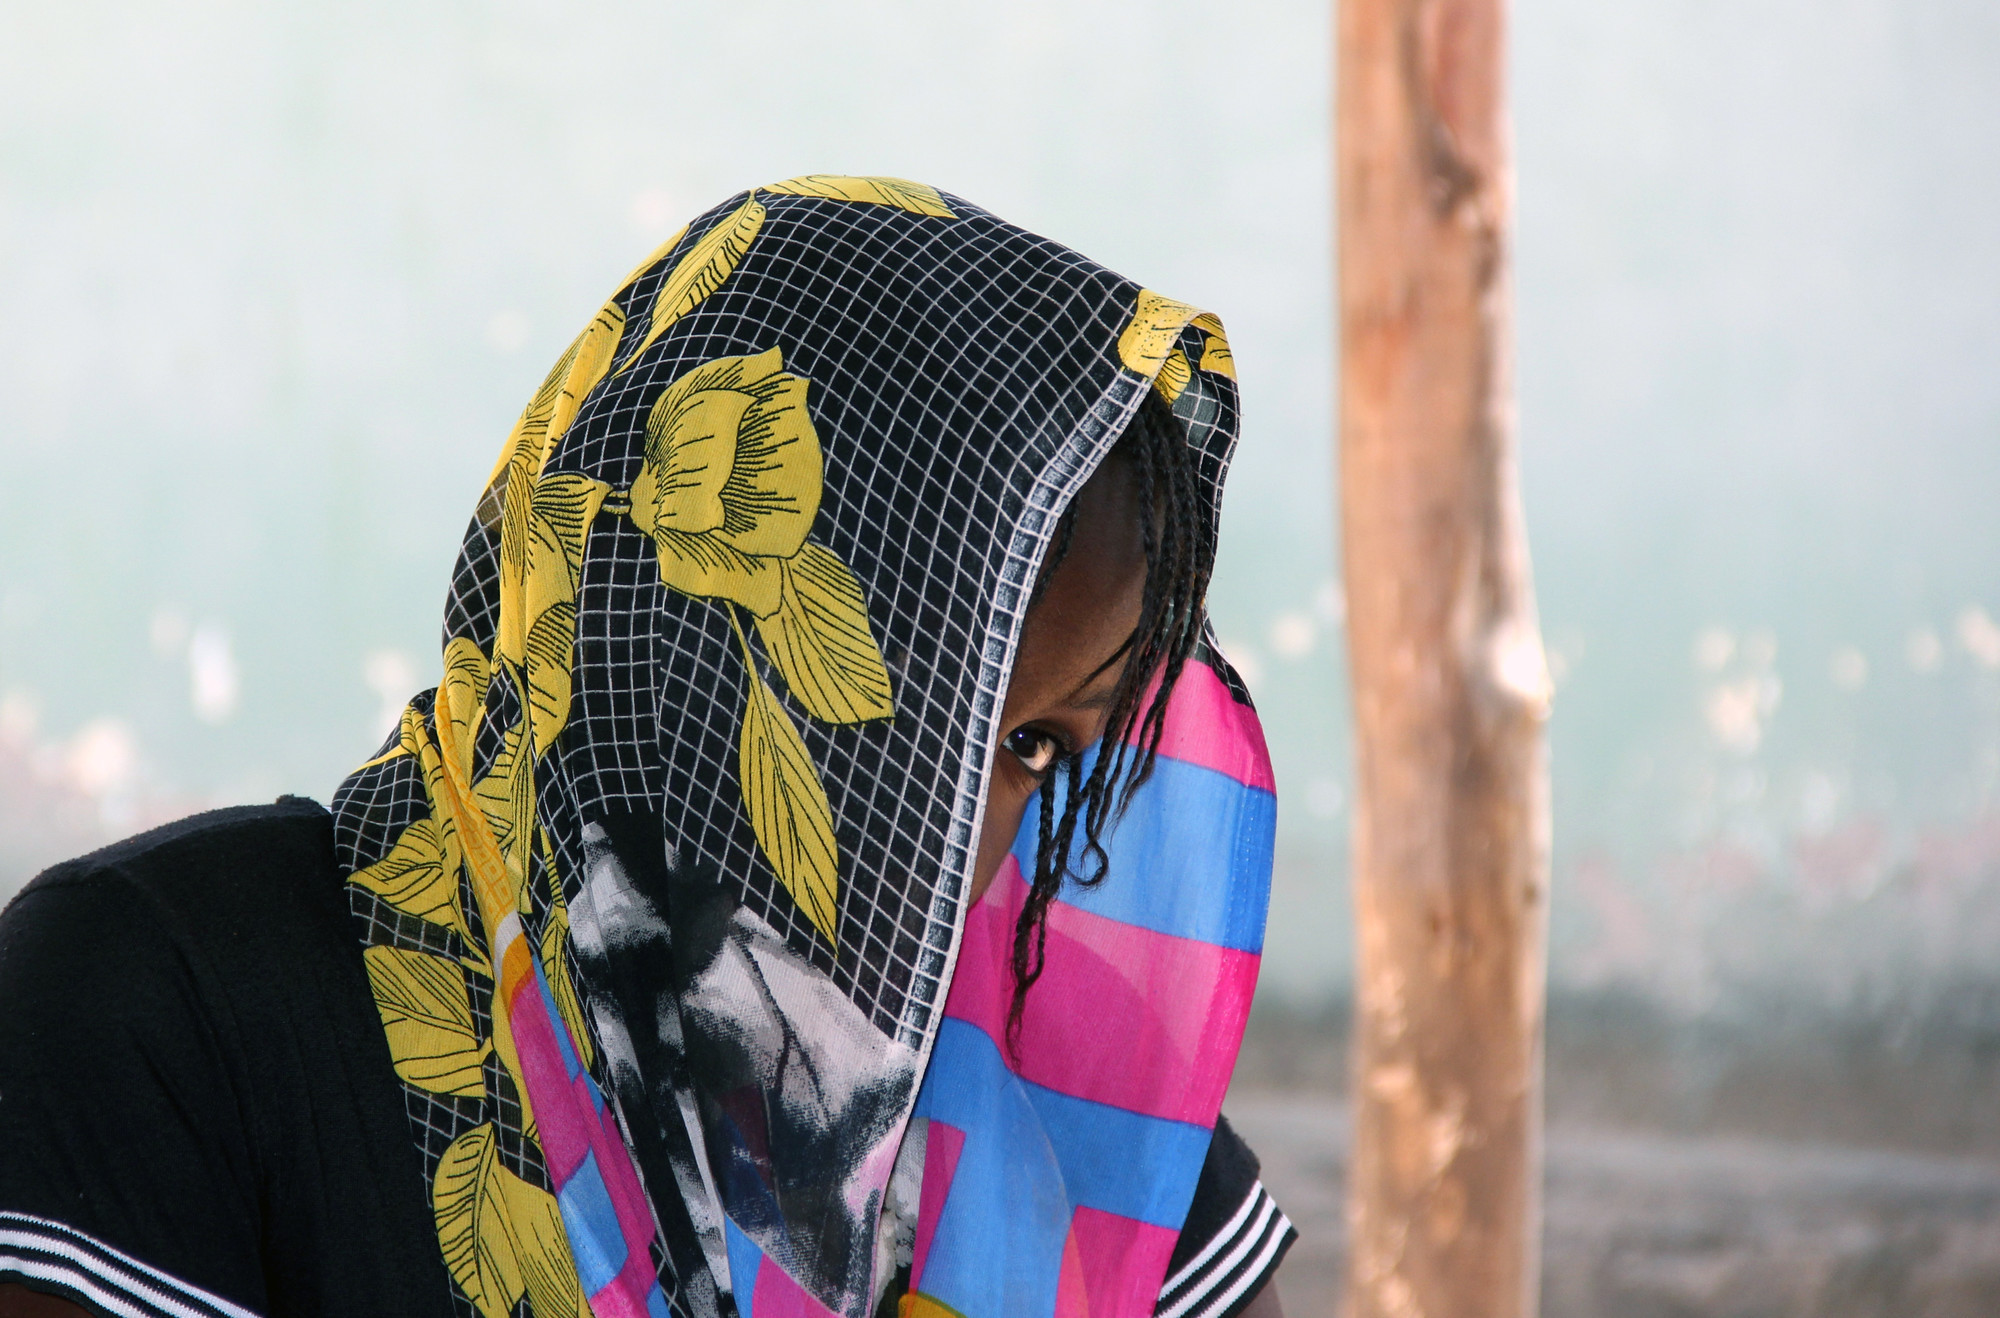 Loveth is now back in the school and hopes to become a midwife after her ordeal of being taken by Boko Haram